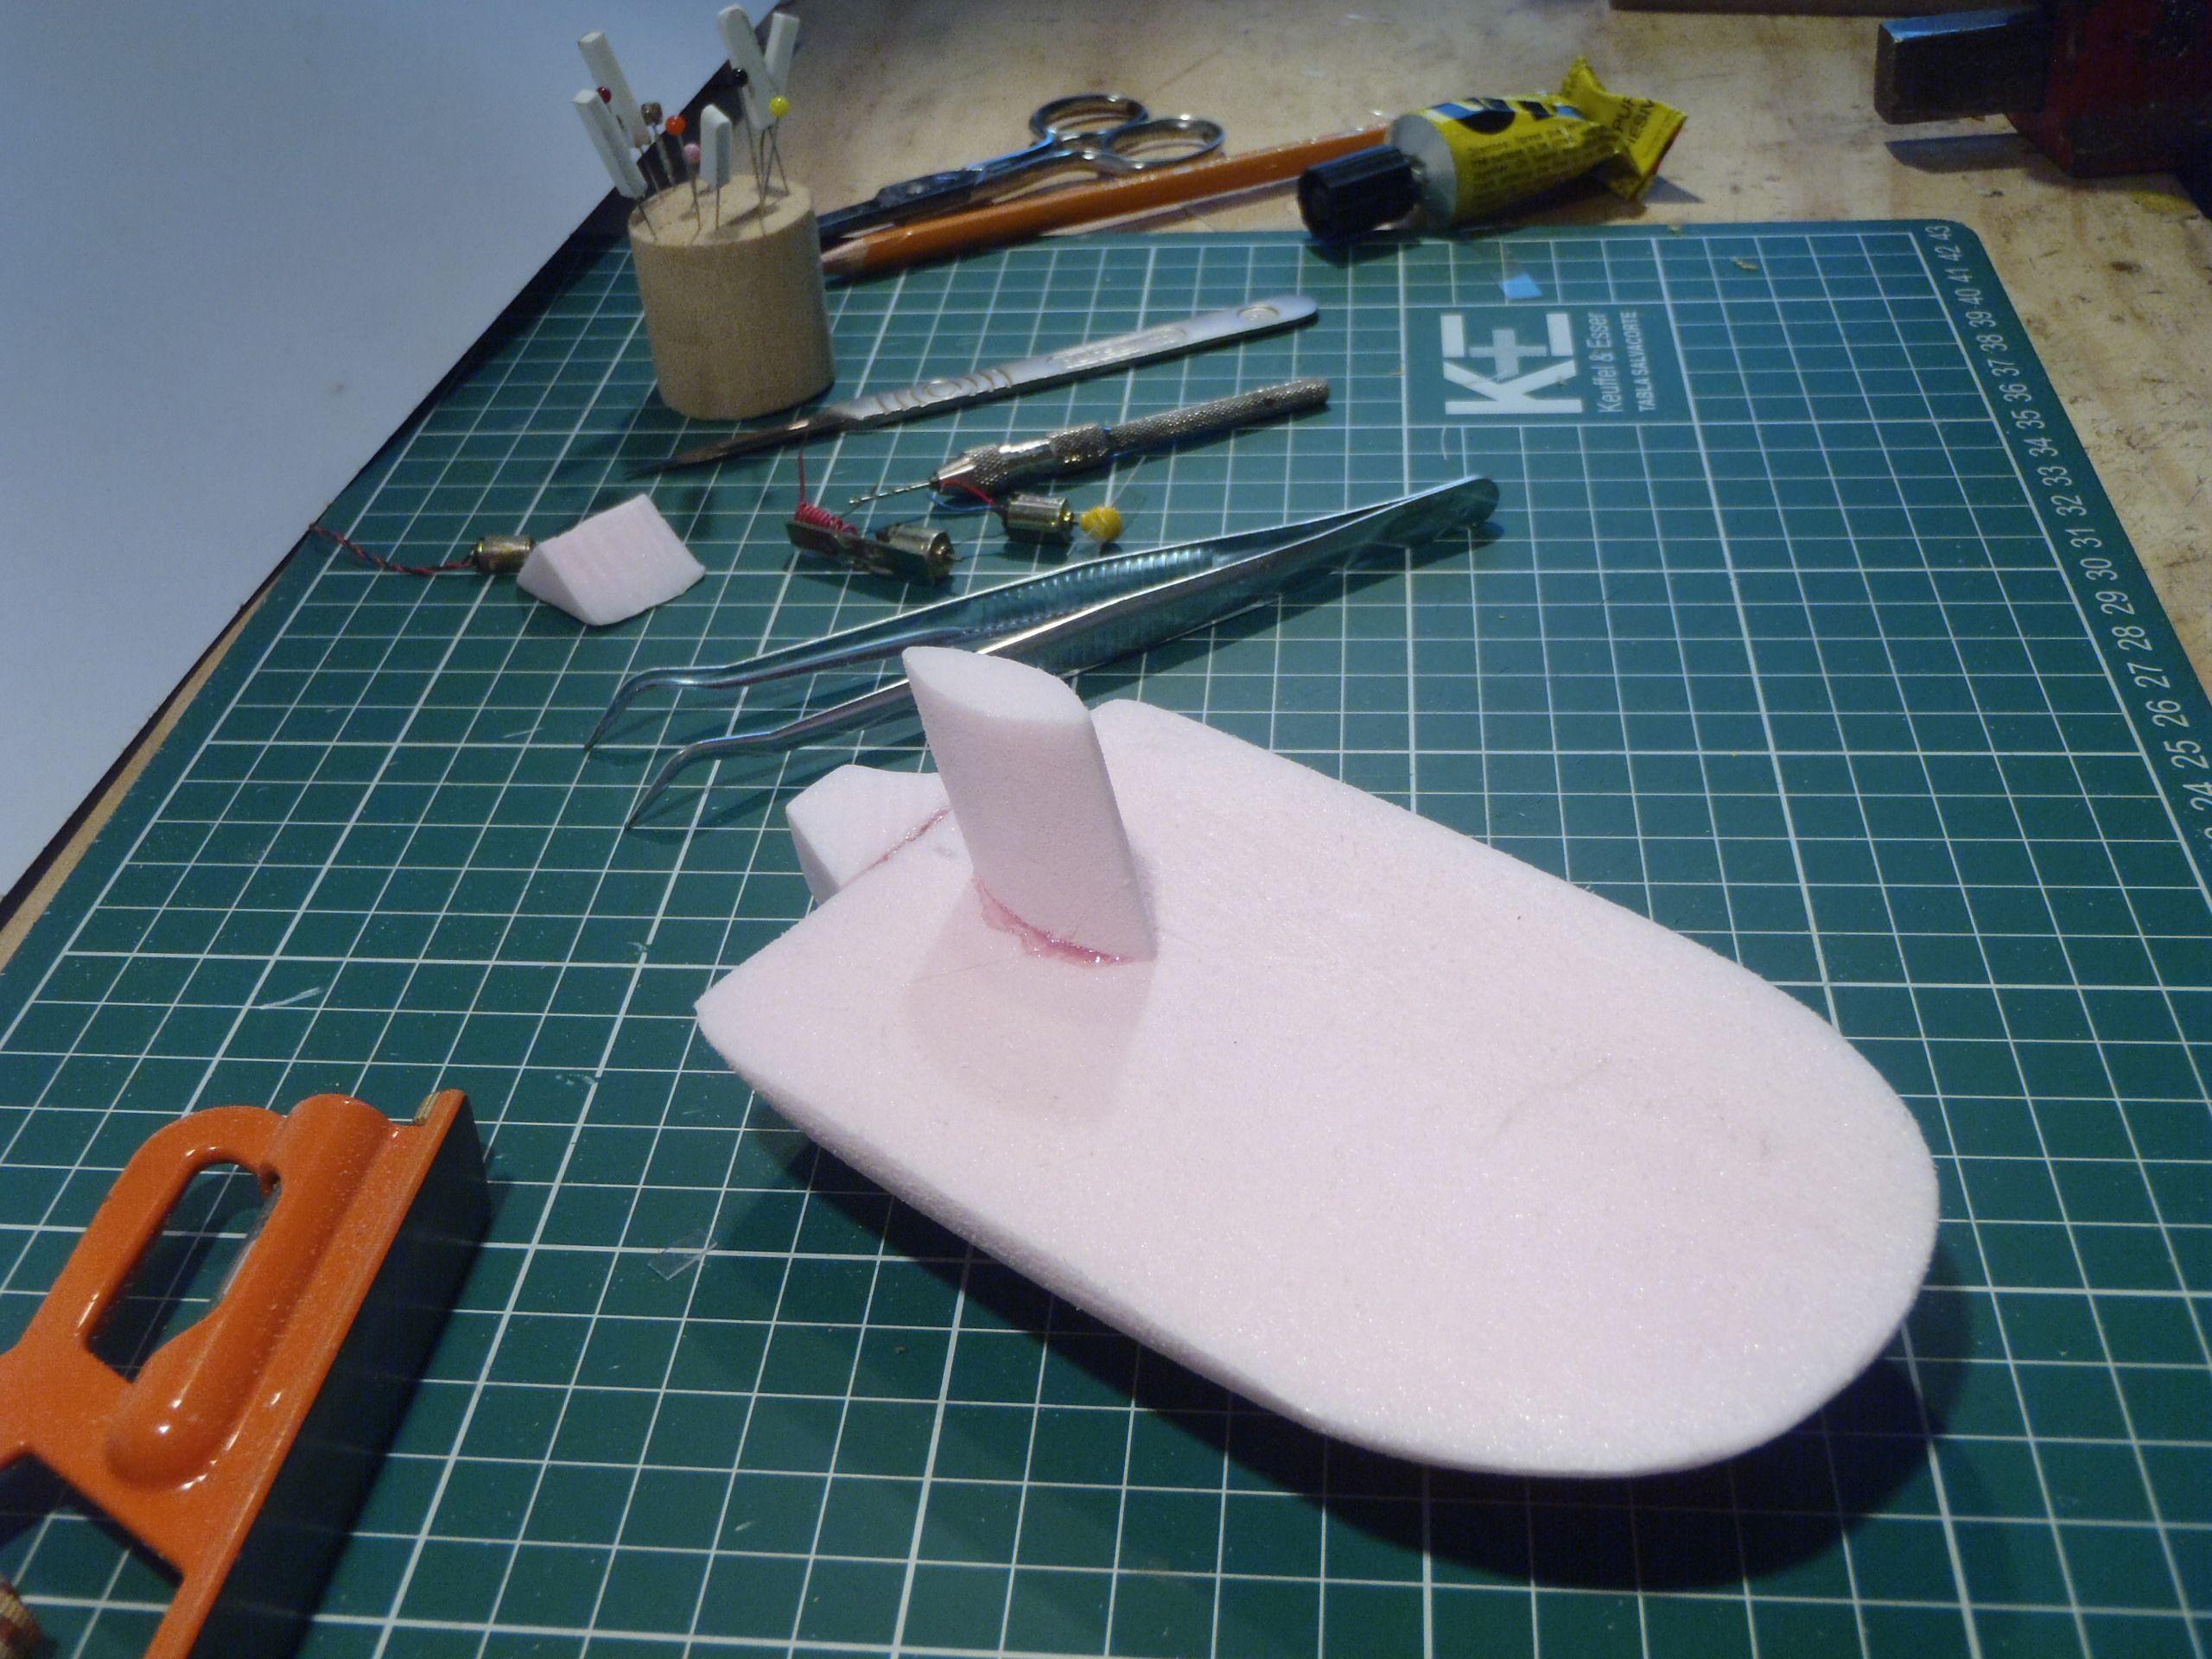 Mini airboat foam diy tutorial how to make foam model boats mini airboat foam diy tutorial how to make sciox Image collections